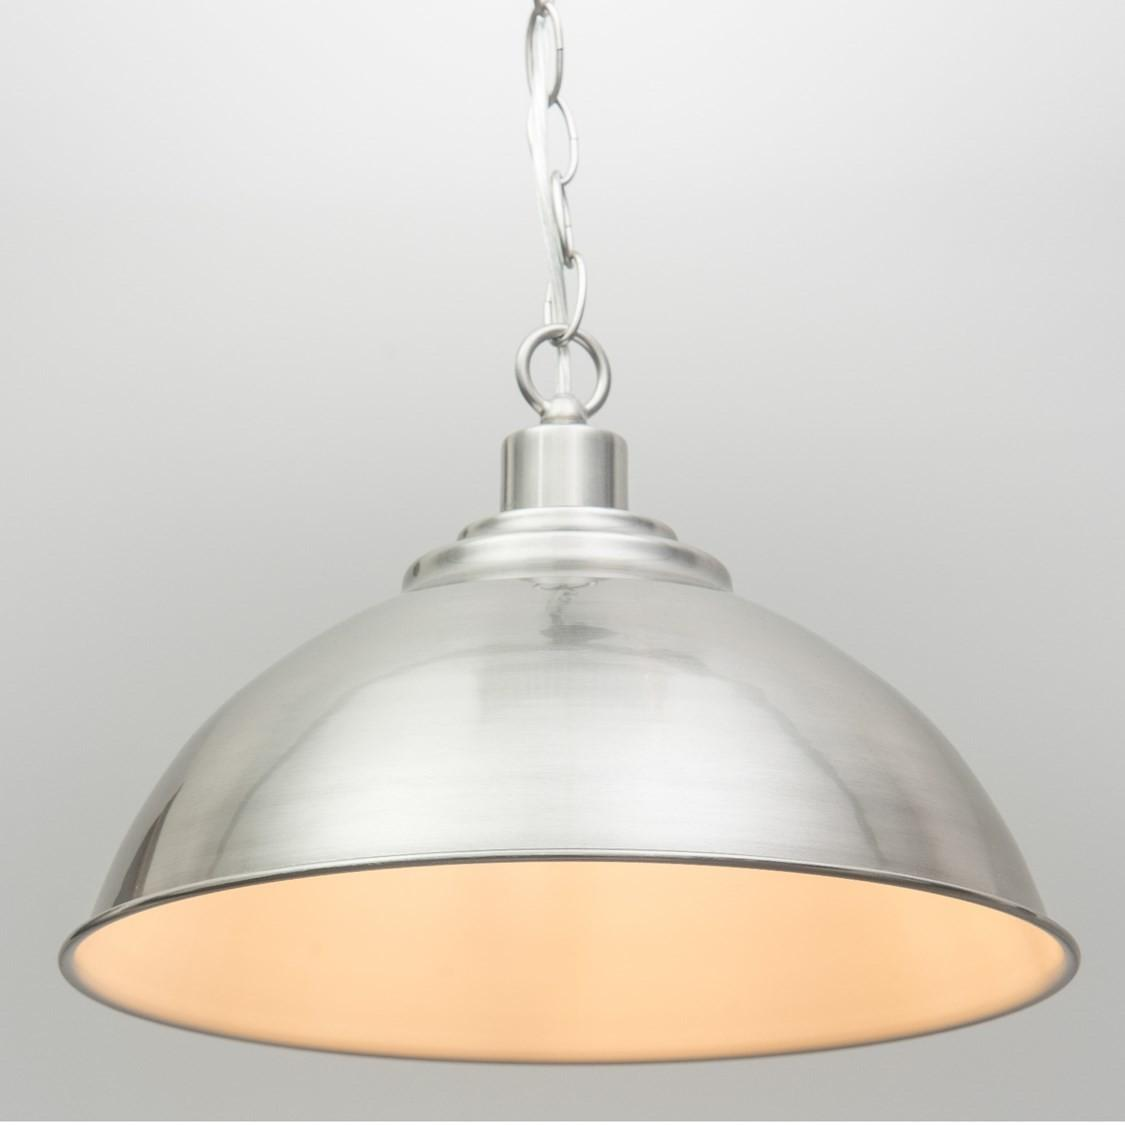 Modern Dome Shape Designer Pendant Ceiling Light Brushed